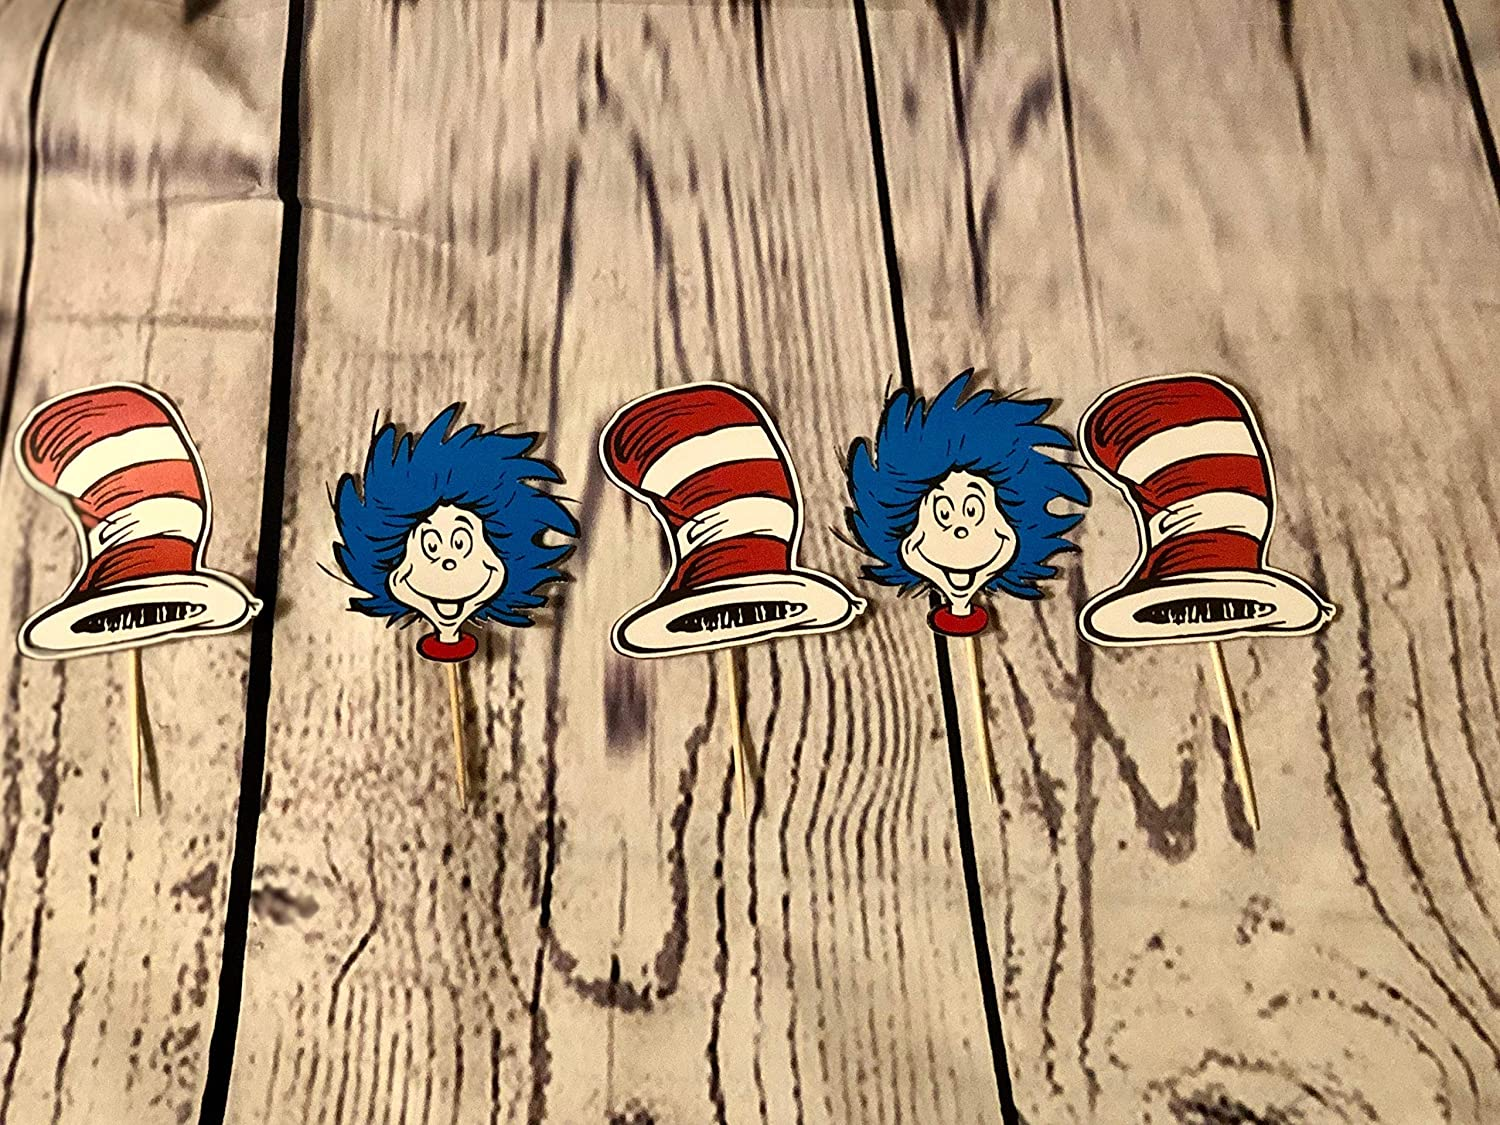 Dr Seuss Cat in the Hat Cupcake toppers//Dr Seuss theme//Cat in the hat party//Cat in the Hat Party Supplies//Dr Seuss Inspired